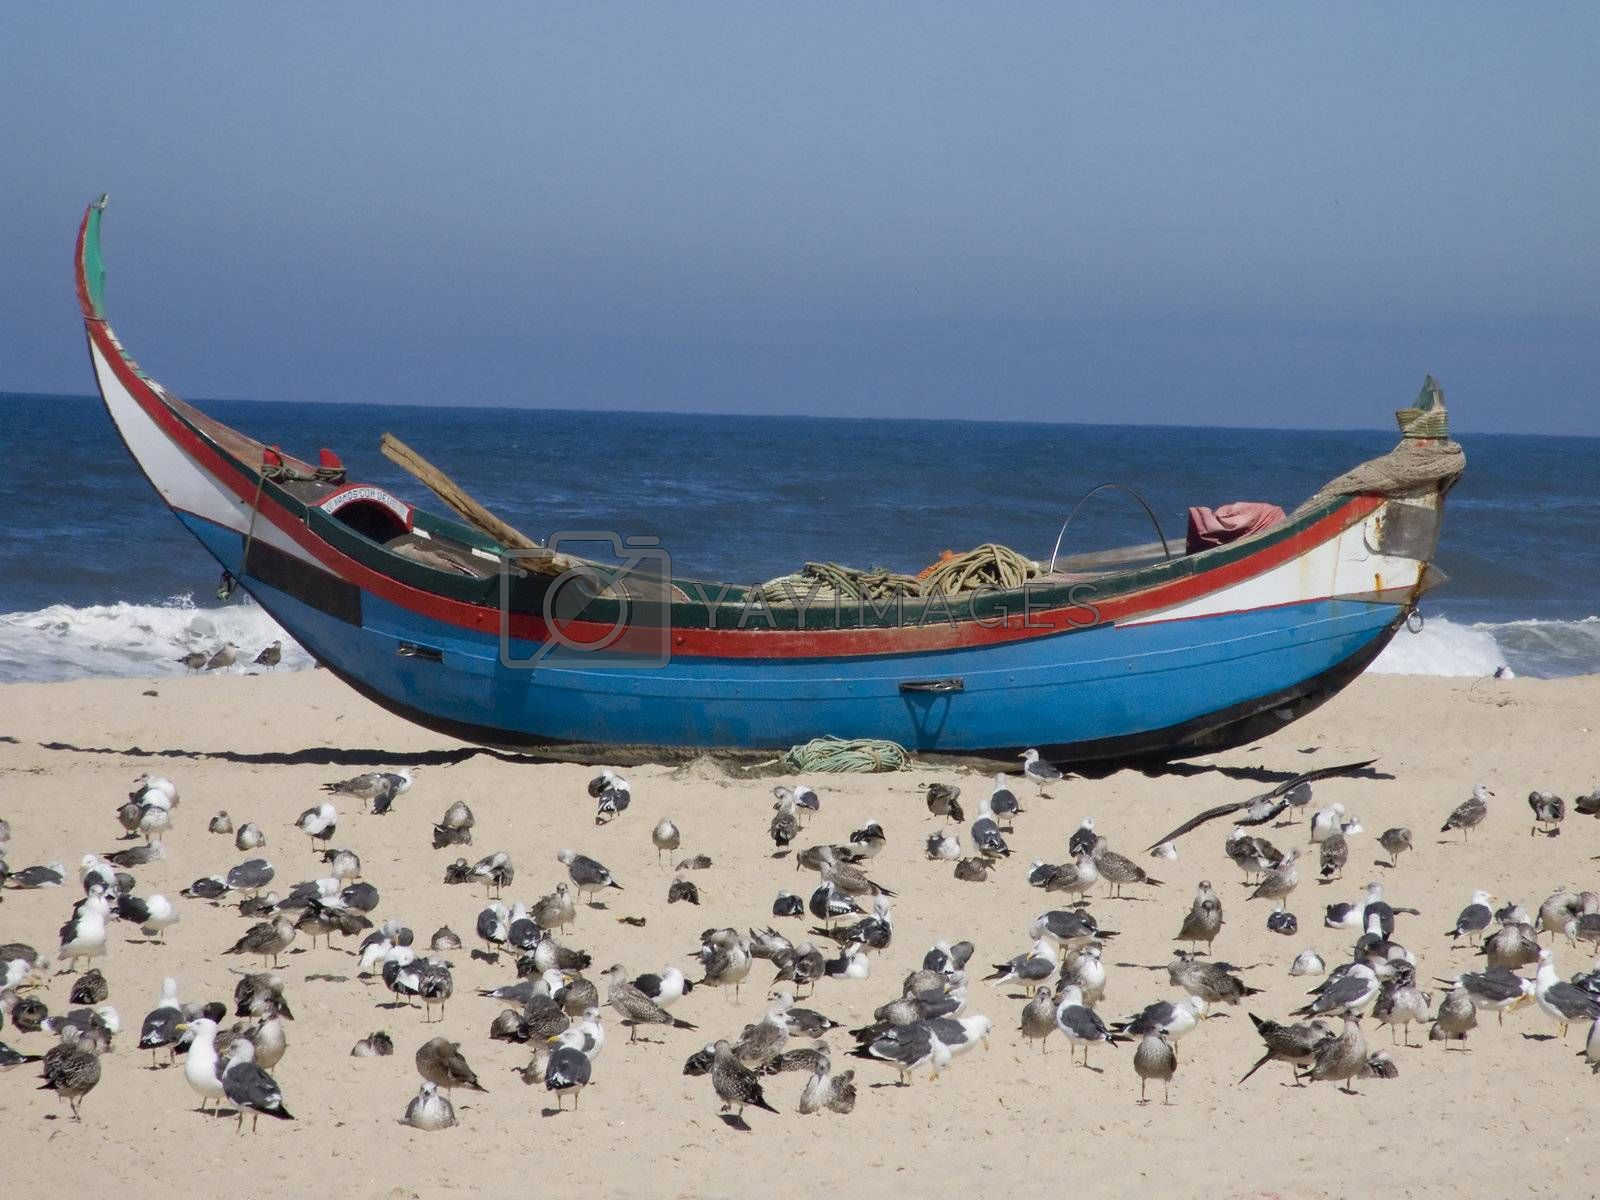 Fisherman boat on the sand by PauloResende